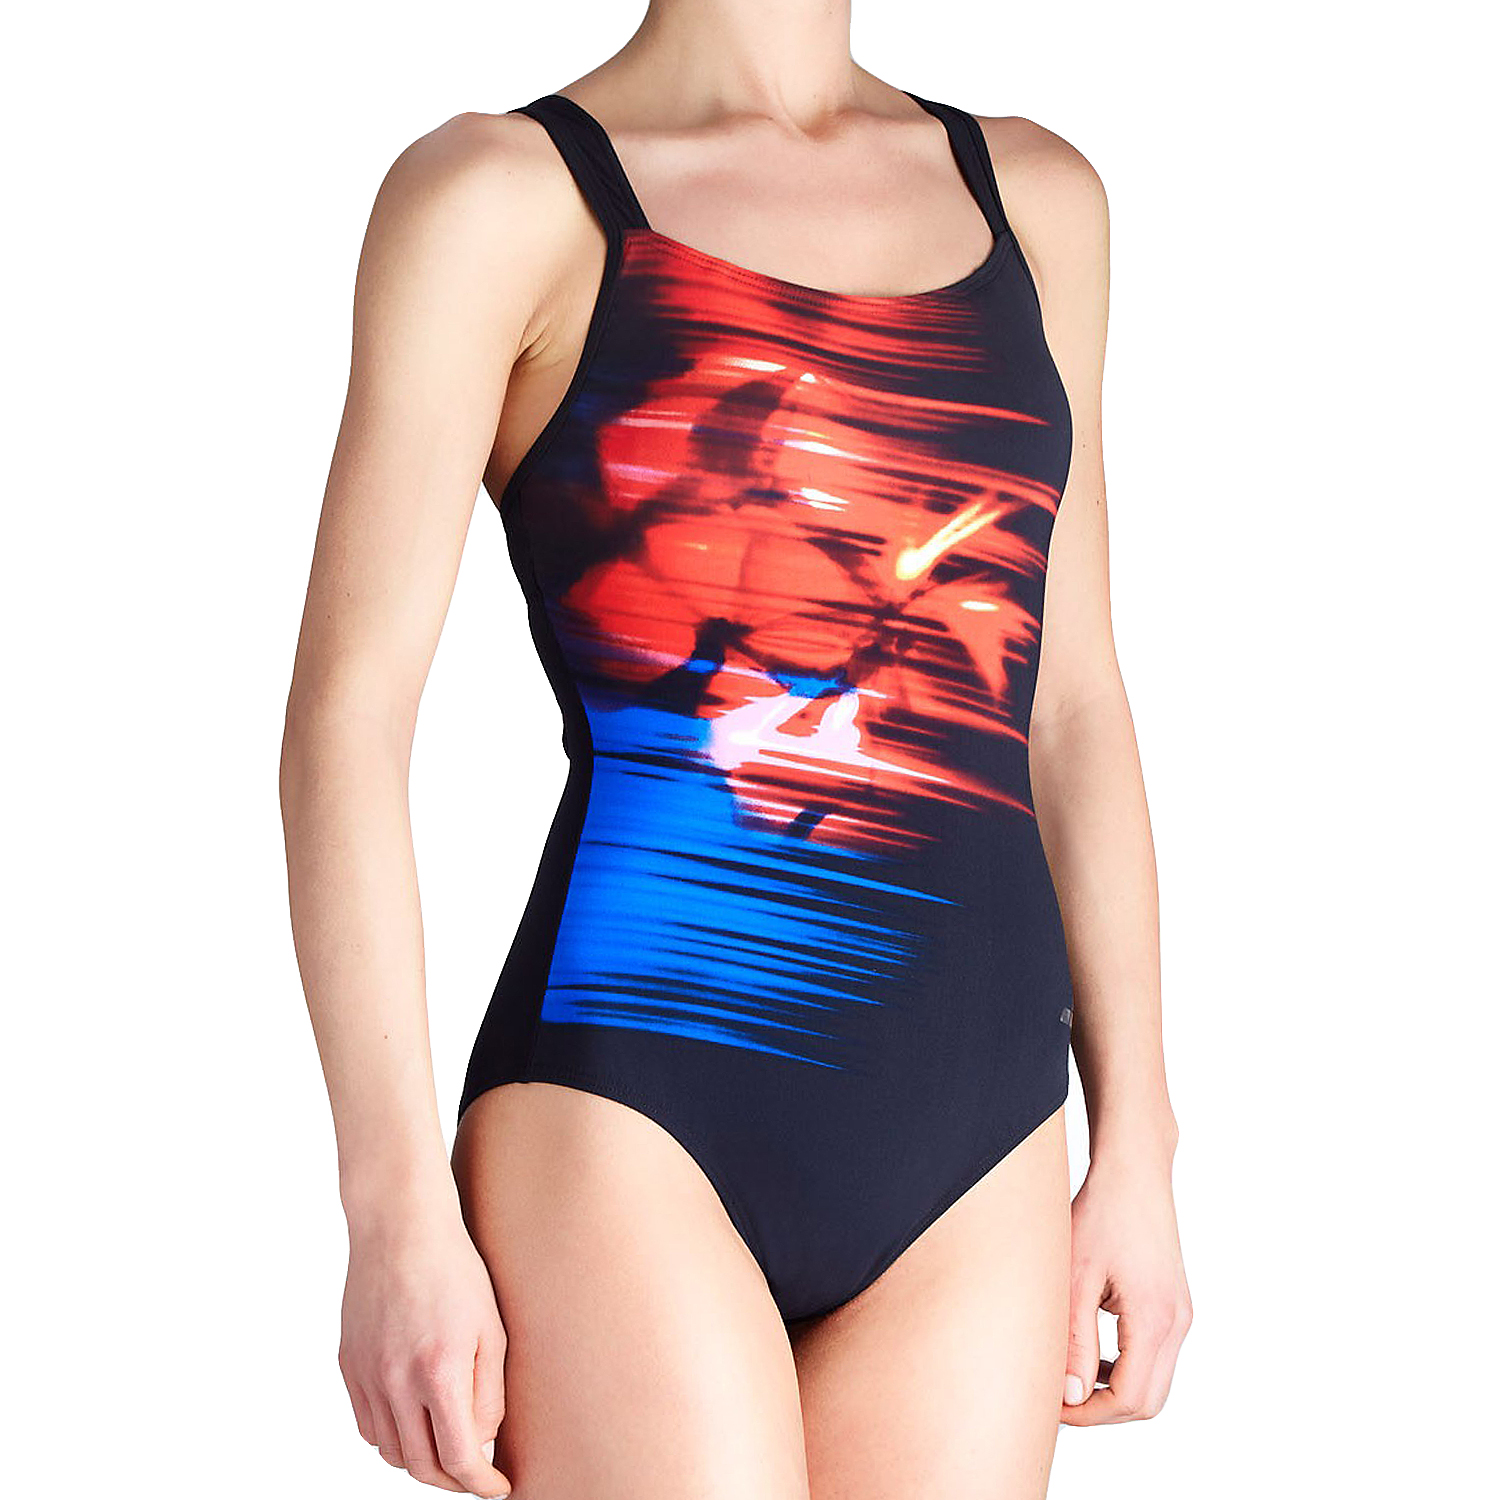 Arena Womens Orchidea Body Shaping One Piece Swimming Swim Swimsuit Costume - 10 | eBay